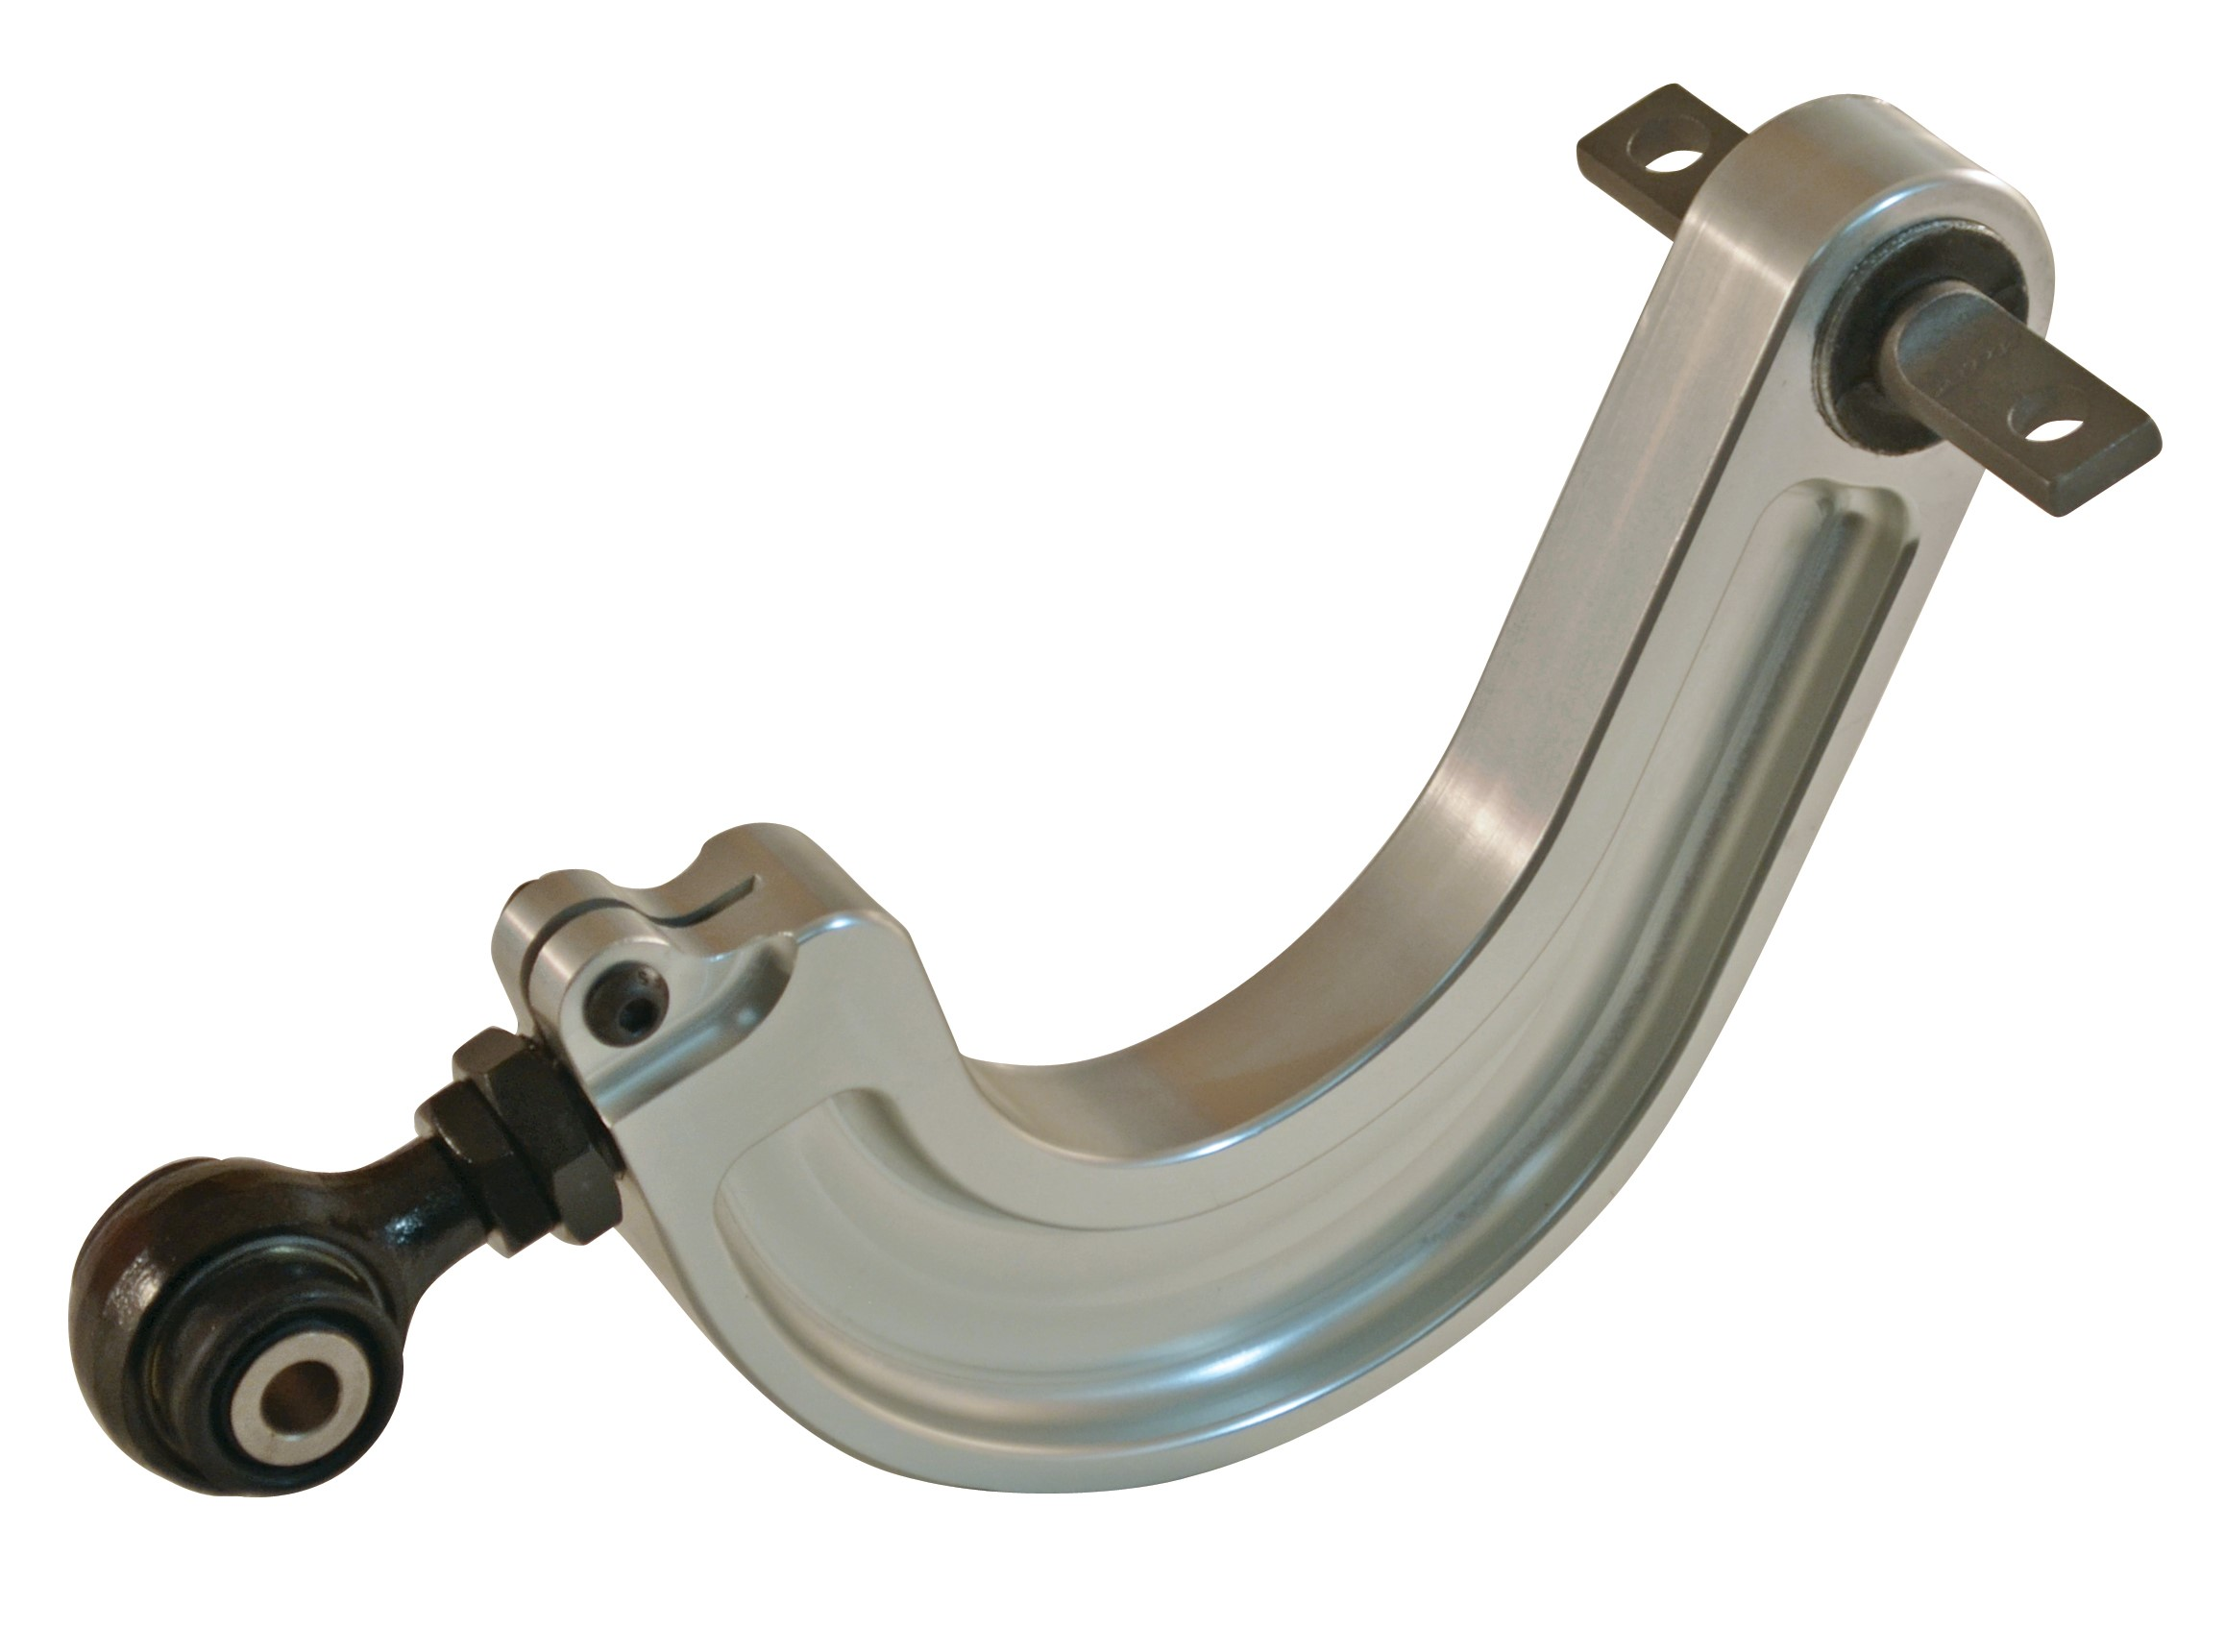 5.67475K Eibach Rear Alignment Camber Lateral Link, 2006 - 2015 Acura ILX